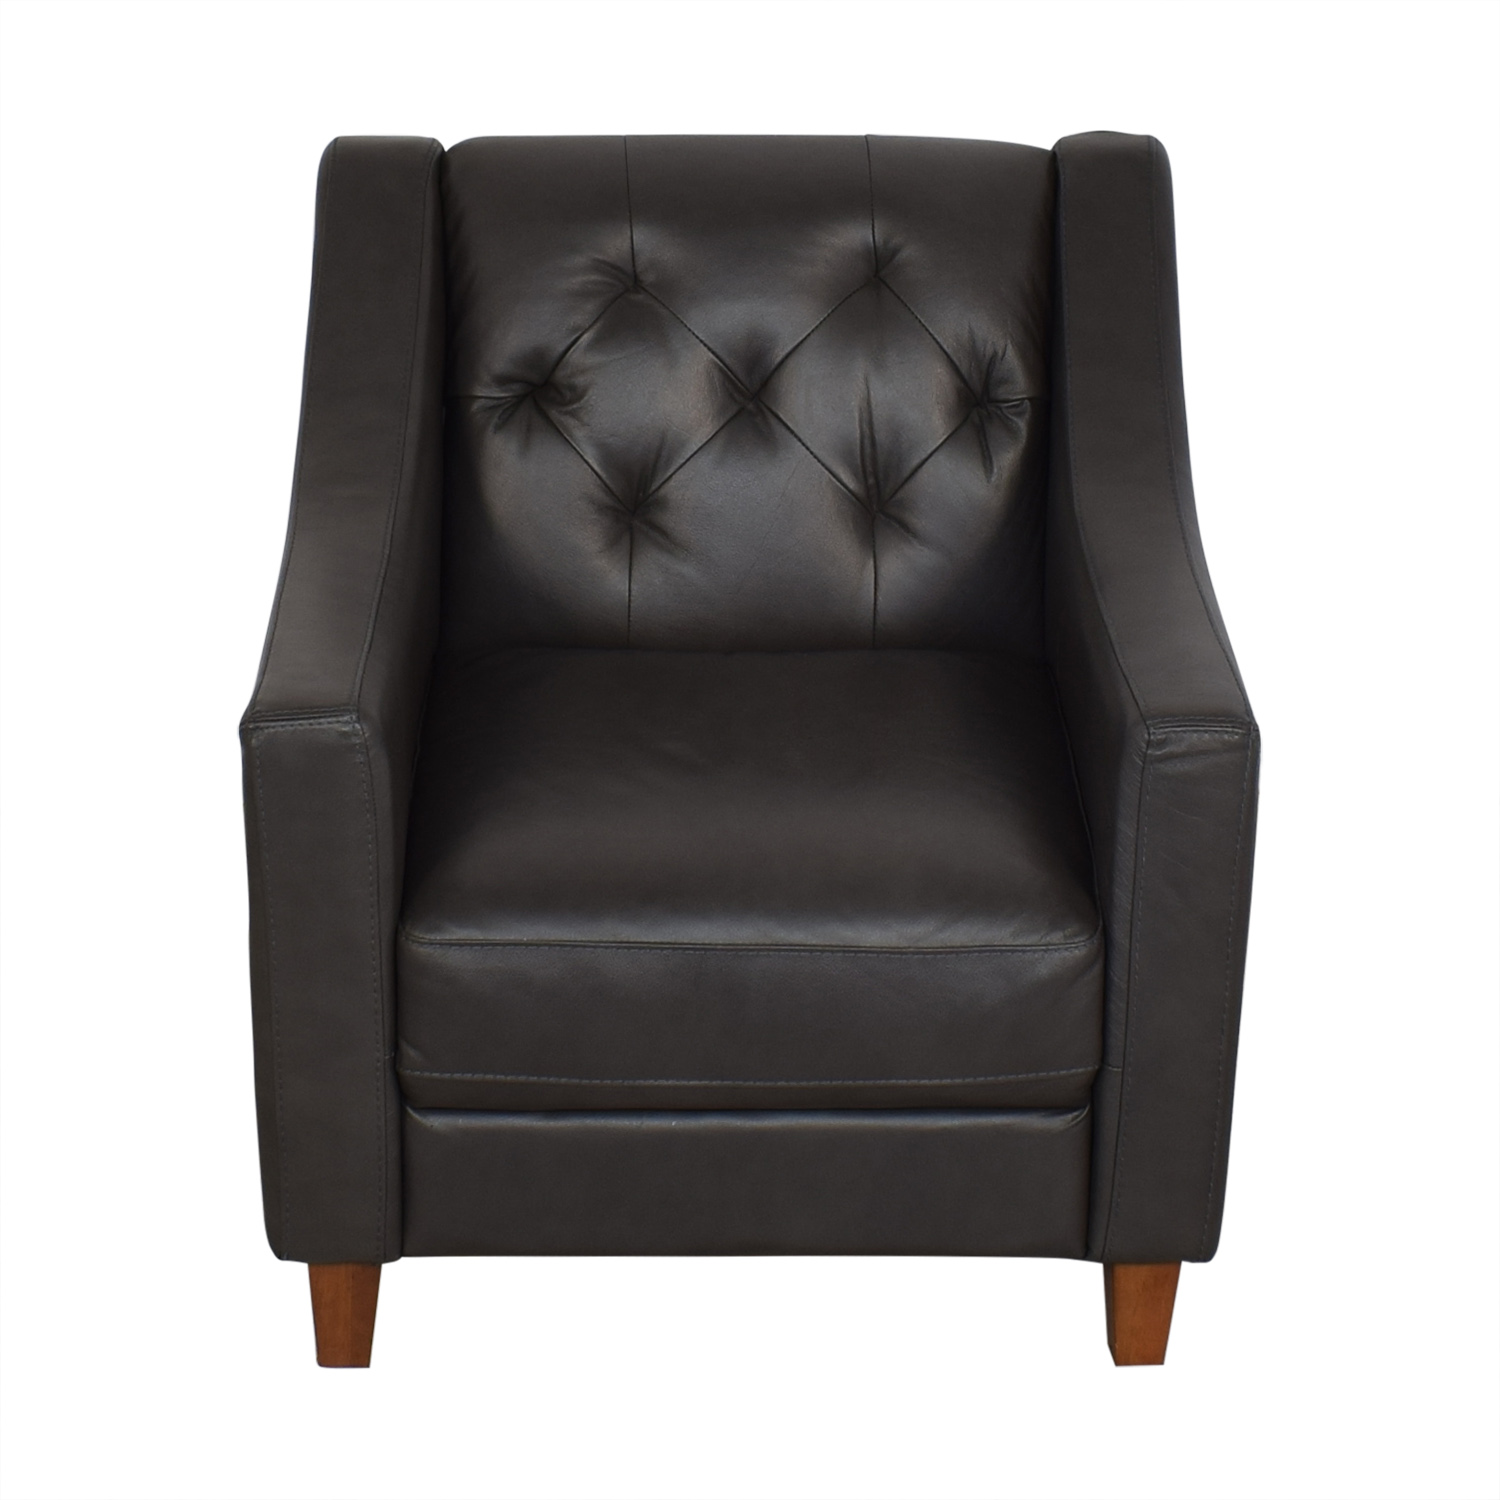 Macy's Macy's Chateau d'Ax Arm Chair second hand